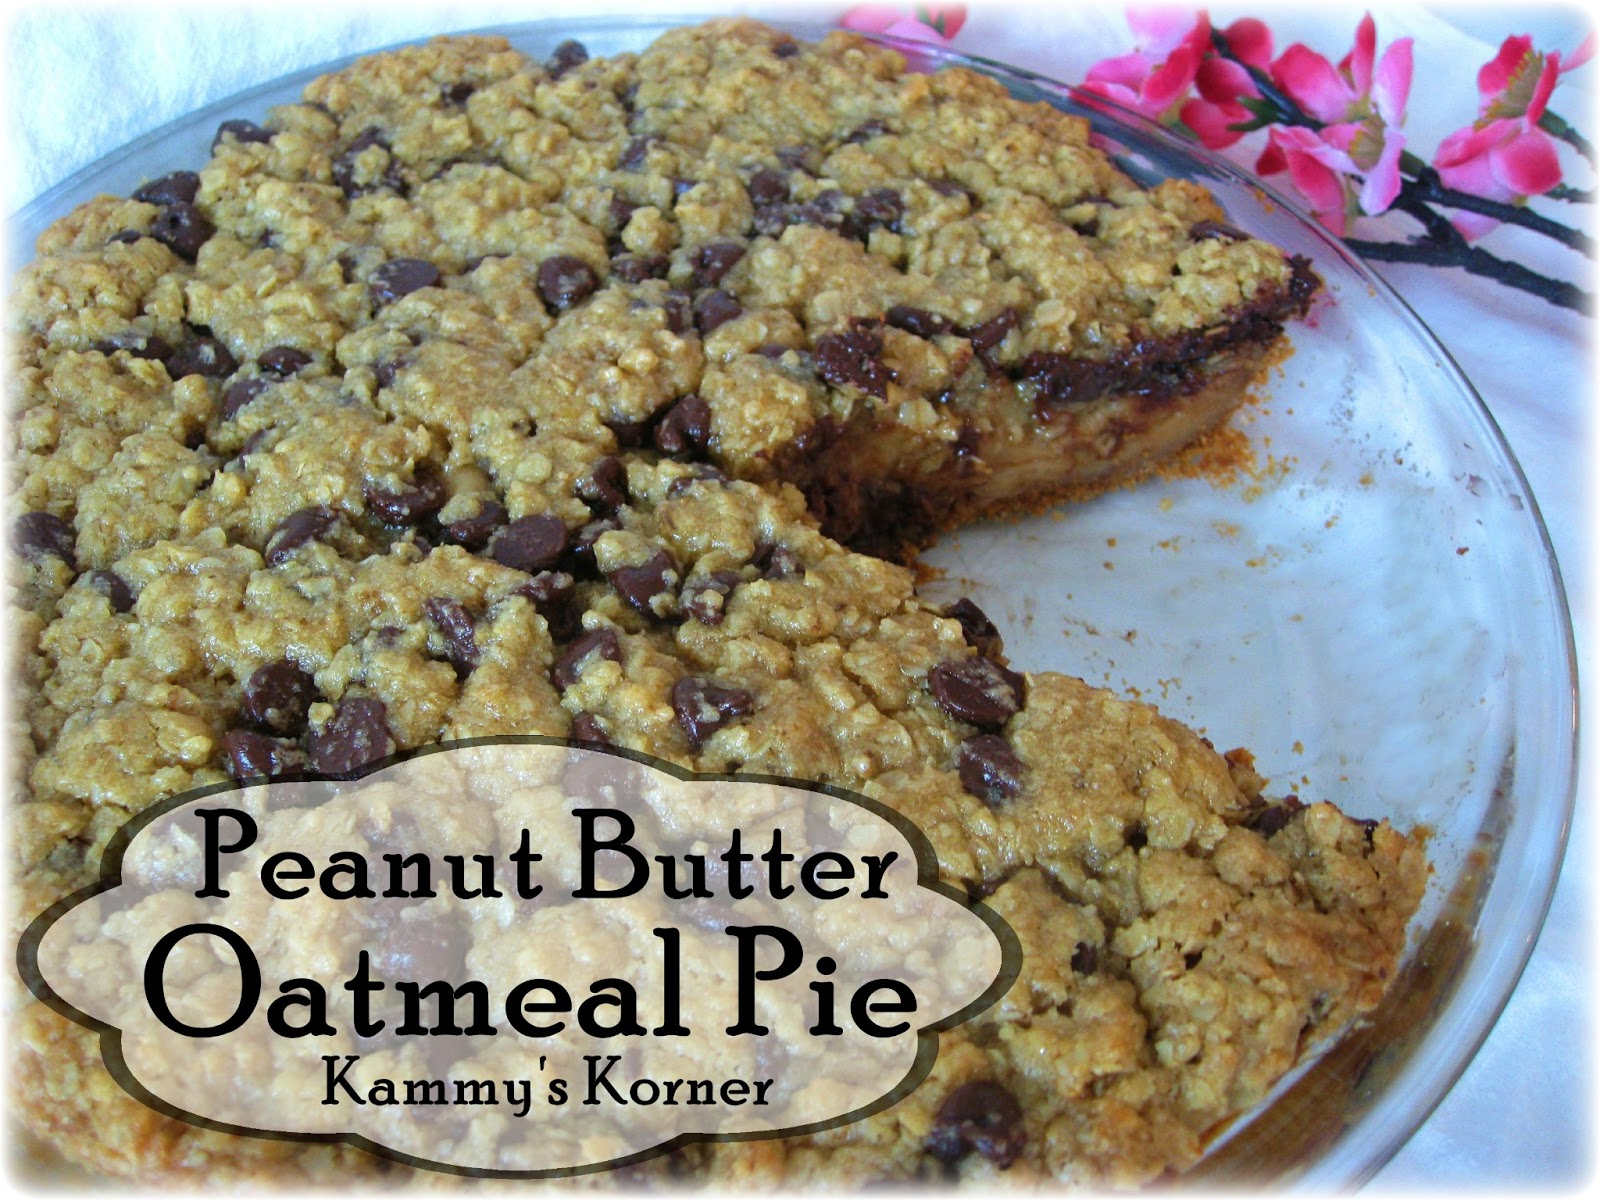 Kammy's Korner: {Chocolate Chip} Peanut Butter Oatmeal Pie